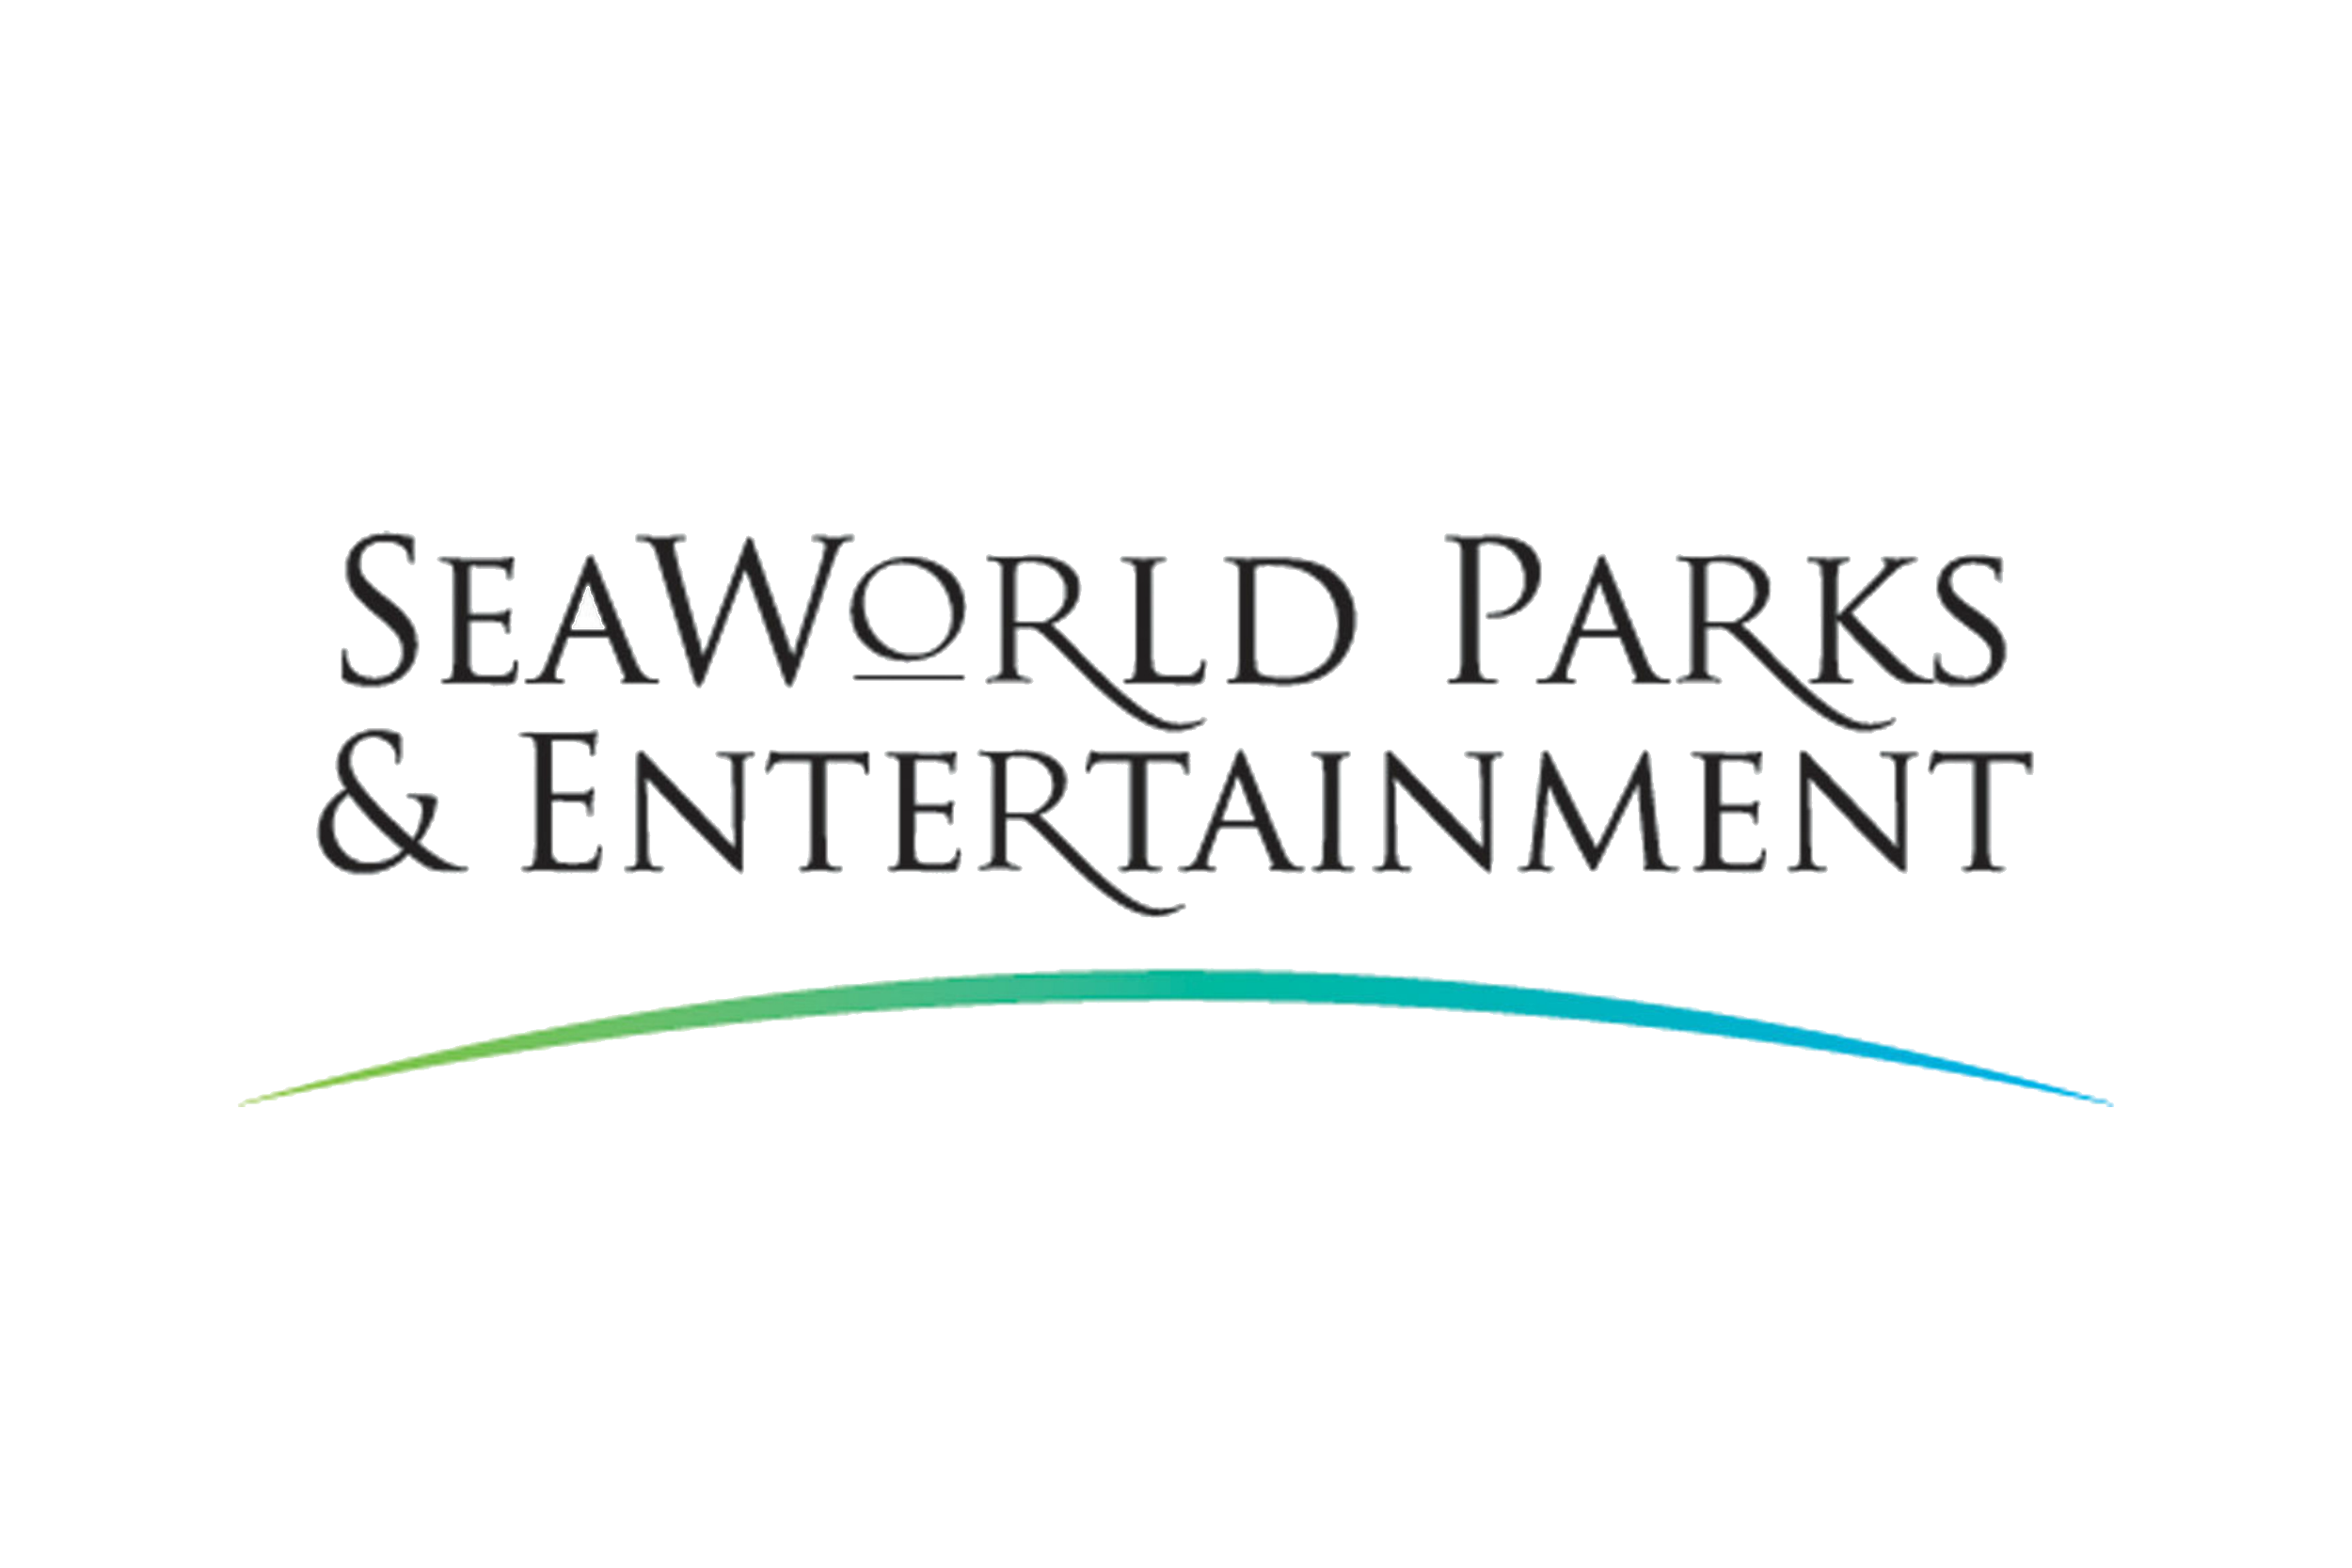 Sea World Parks & Entertainment - From a swim with the dolphins, to water parks and thrilling rides, there is something for the whole family at Discovery Cove, Aquatica, Sea World, Busch Gardens, Adventure Island, Water Country, or Sesame Place!